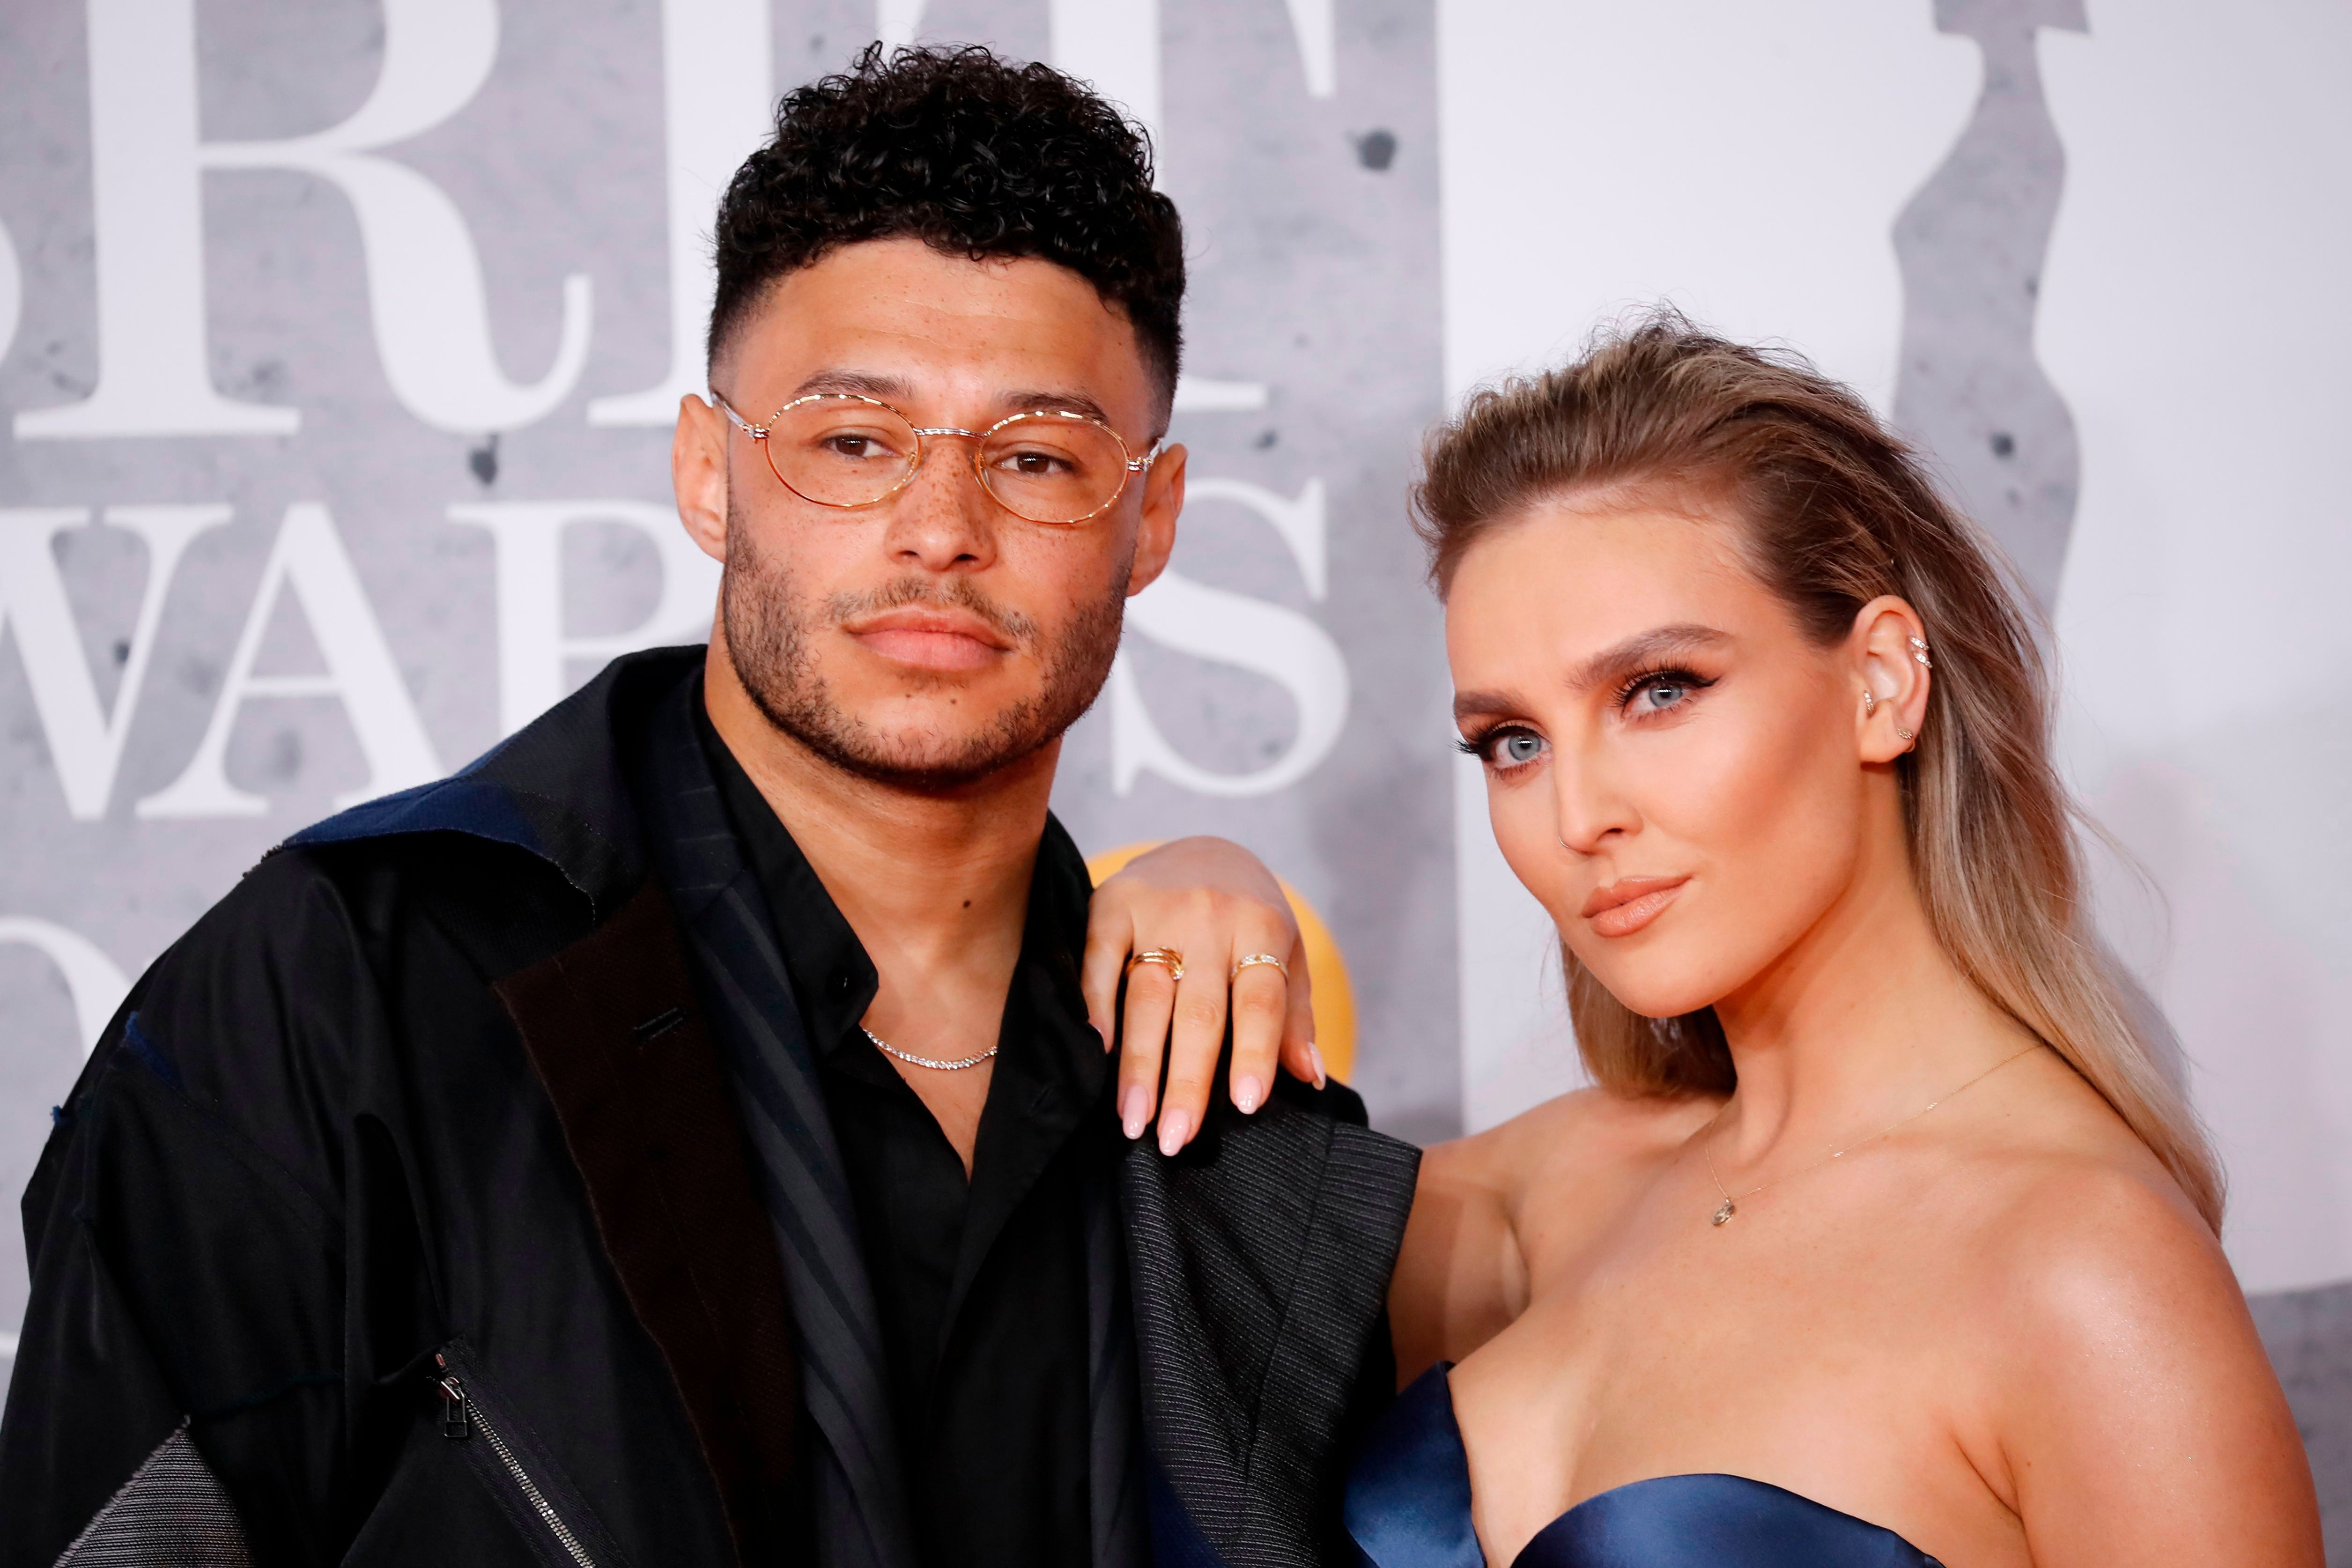 Alex Oxlade-Chamberlain and Perrie Edwards at the BRIT Awards in London on February 20, 2019 | Photo:Tolga Akmen/AFP/Getty Images